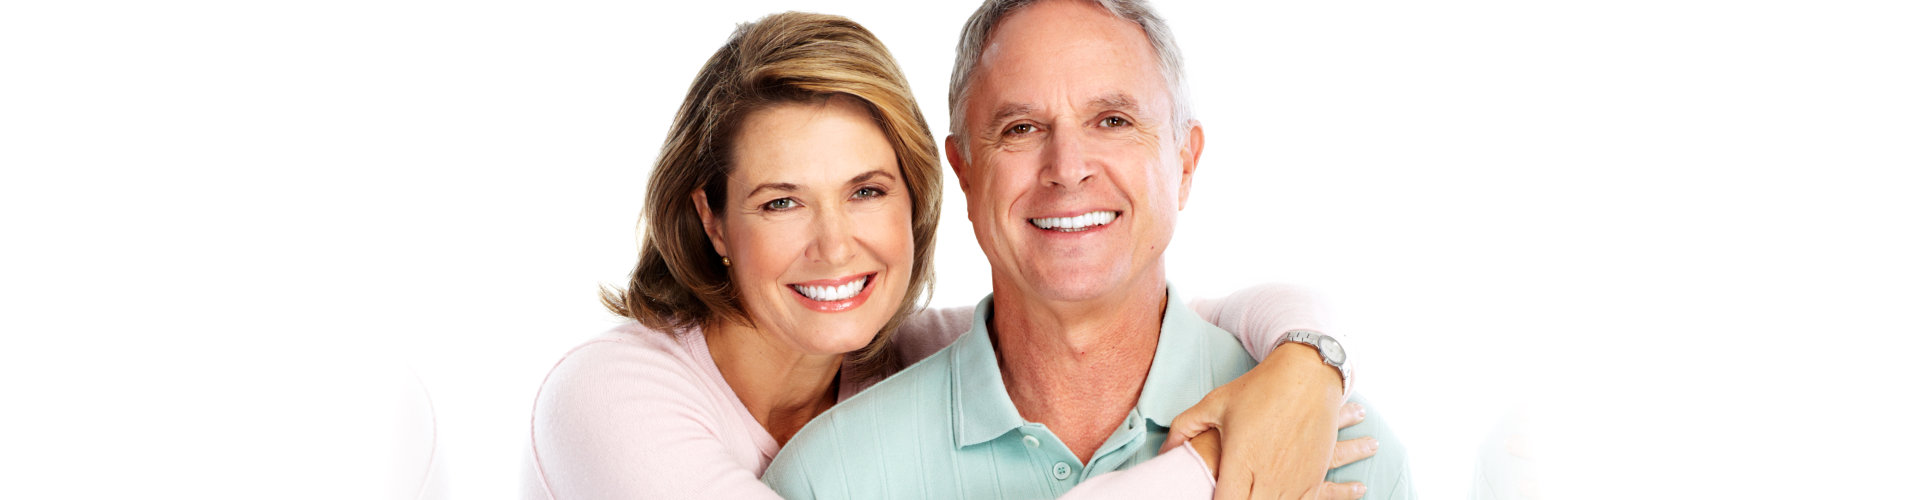 couple smiling with their beautiful teeth